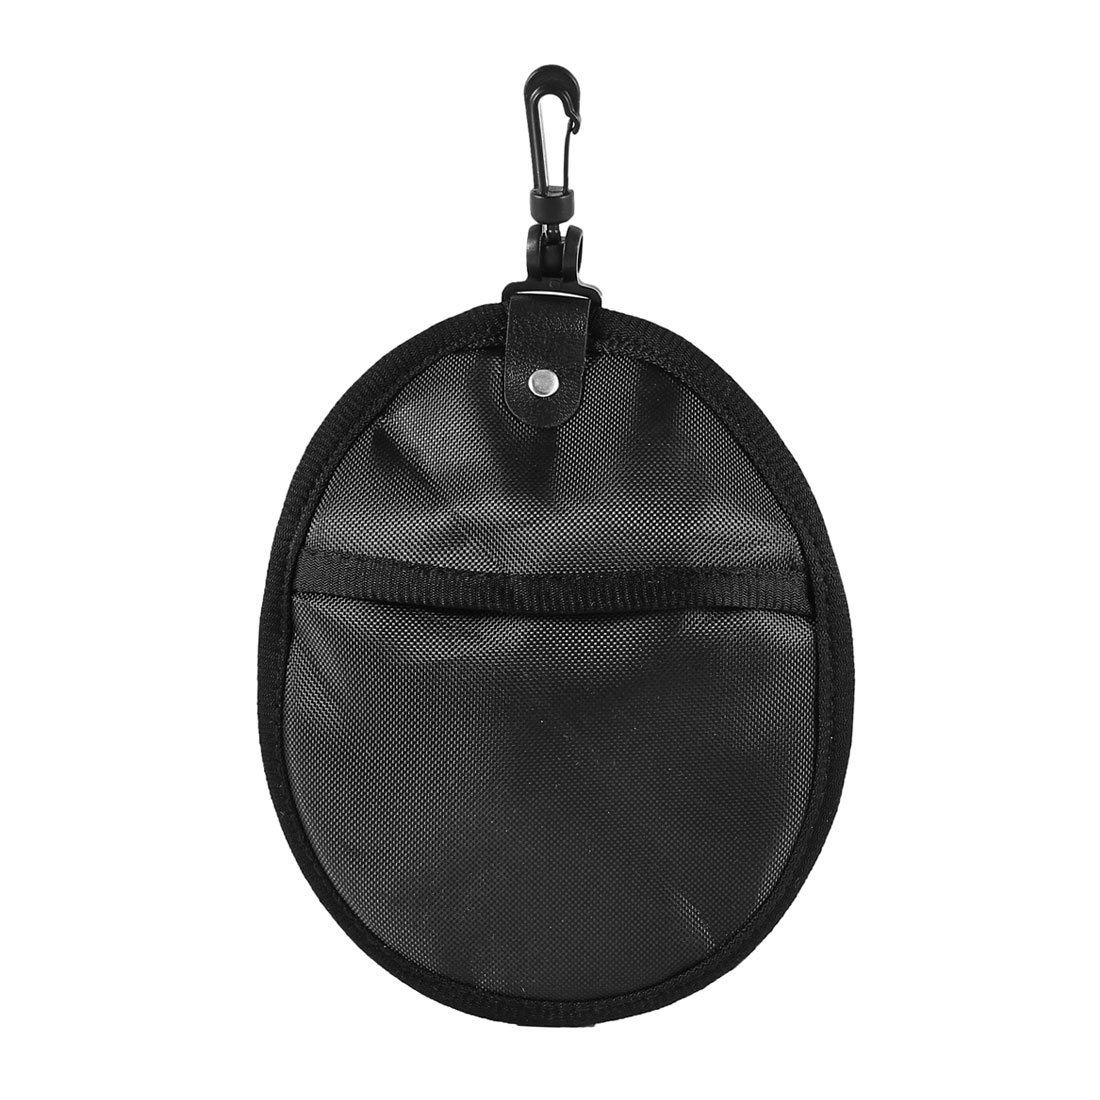 DSLR SLR Camera UV Filter Lens 2 Compartments Cover Bag Case Pouch Holder Black